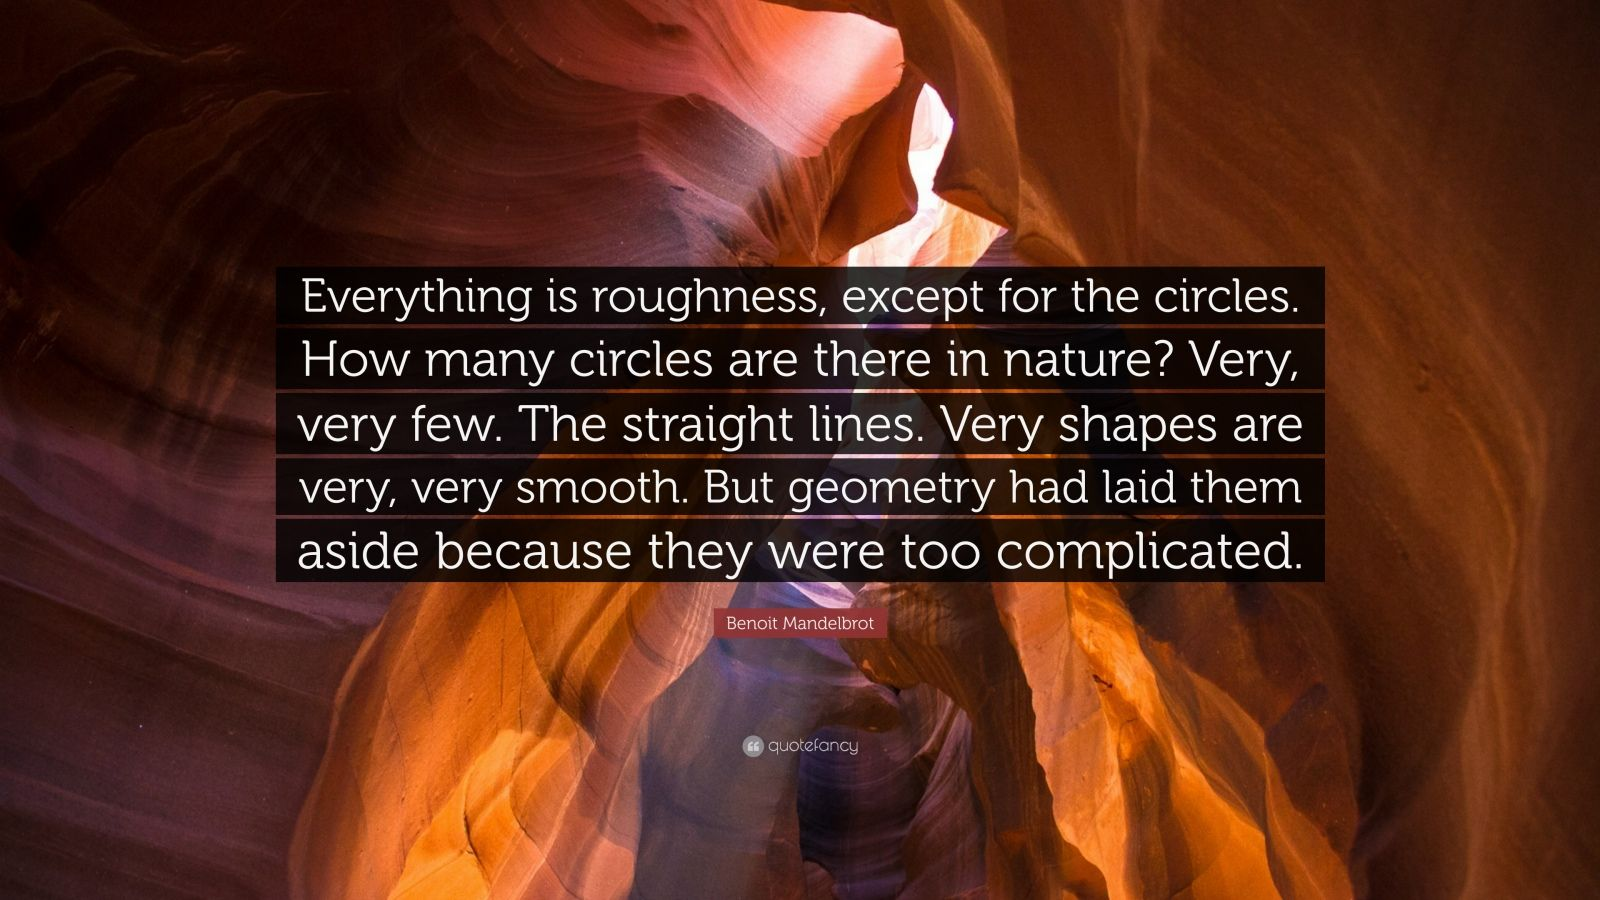 "Benoit Mandelbrot Quote: ""Everything is roughness, except for the circles. How many circles are there in nature? Very, very few. The straight lines. Very shapes are very, very smooth. But geometry had laid them aside because they were too complicated."""